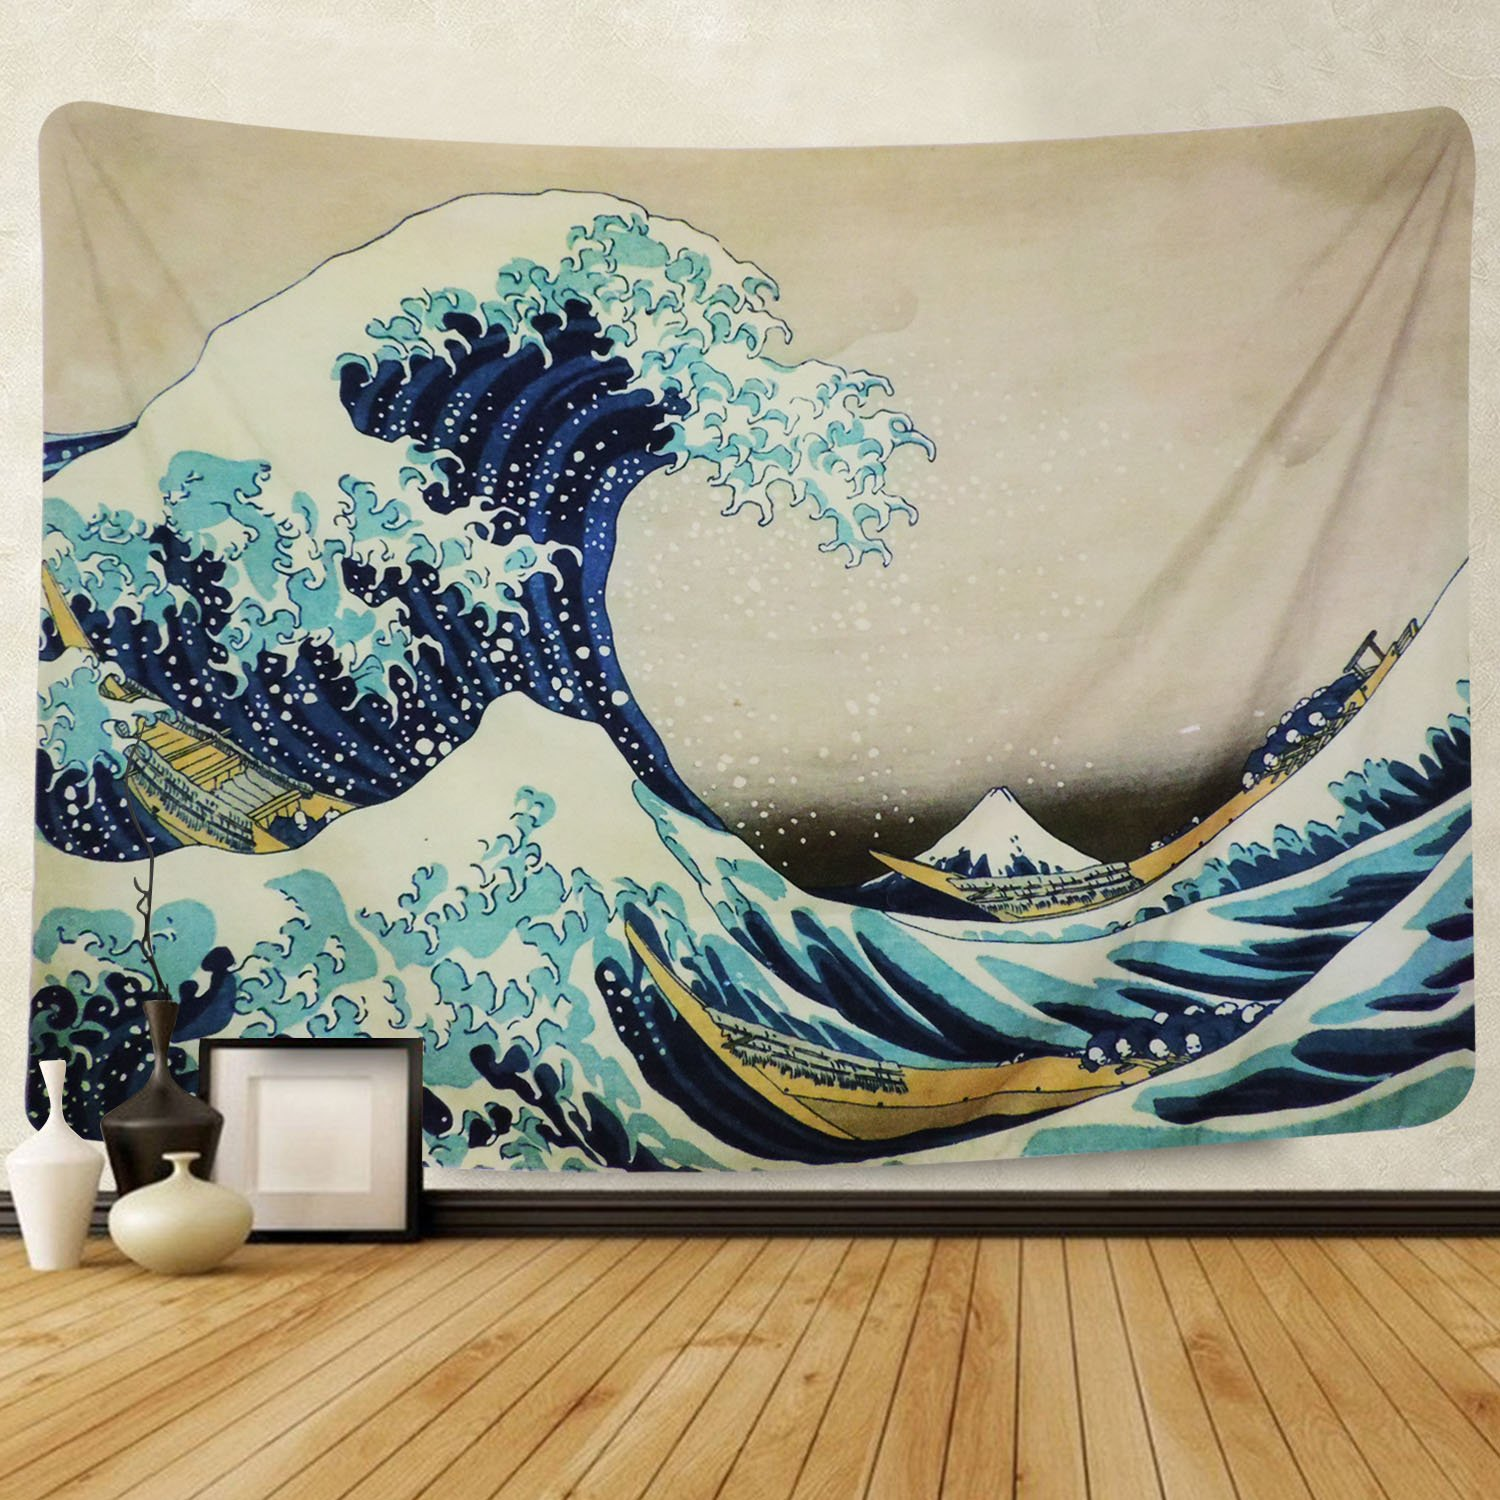 Tapestry Wall Tapestry Wall Hanging Tapestries The Great Wave off Kanagawa by Katsushika Hokusai Thirty-six Views of Mount Fuji Tapestry Wall Blanket Wall Decor Wall Art Home Decor 59 x 51 Inches by Martine Mall